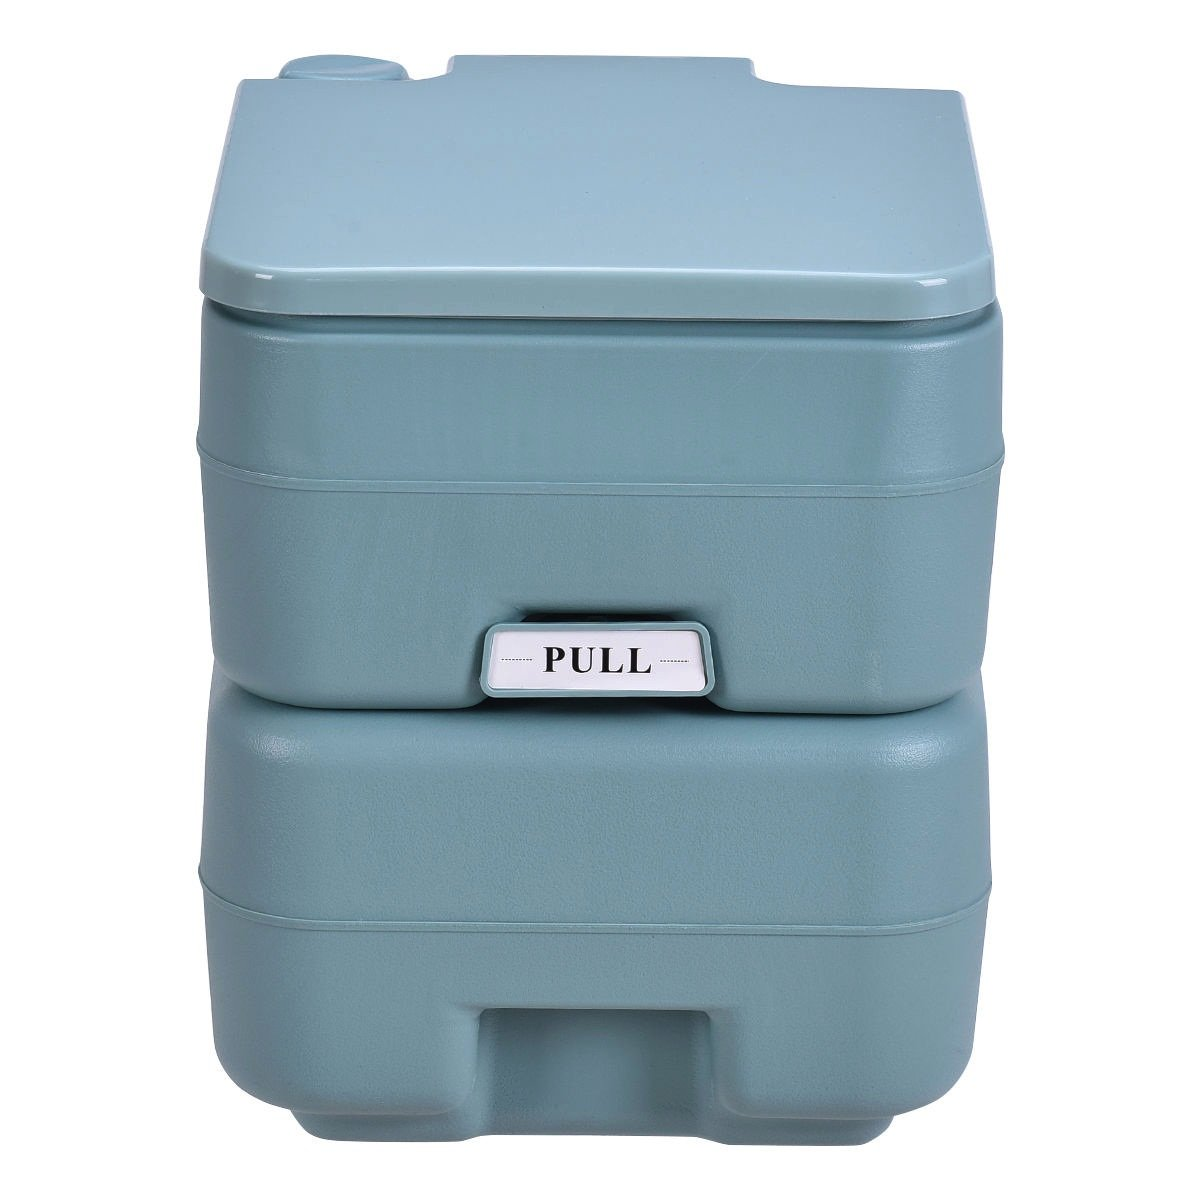 20L Easy Carry & Clean Portable Travel Flush Toilet Greenish Gray Potty by FDInspiration (Image #5)